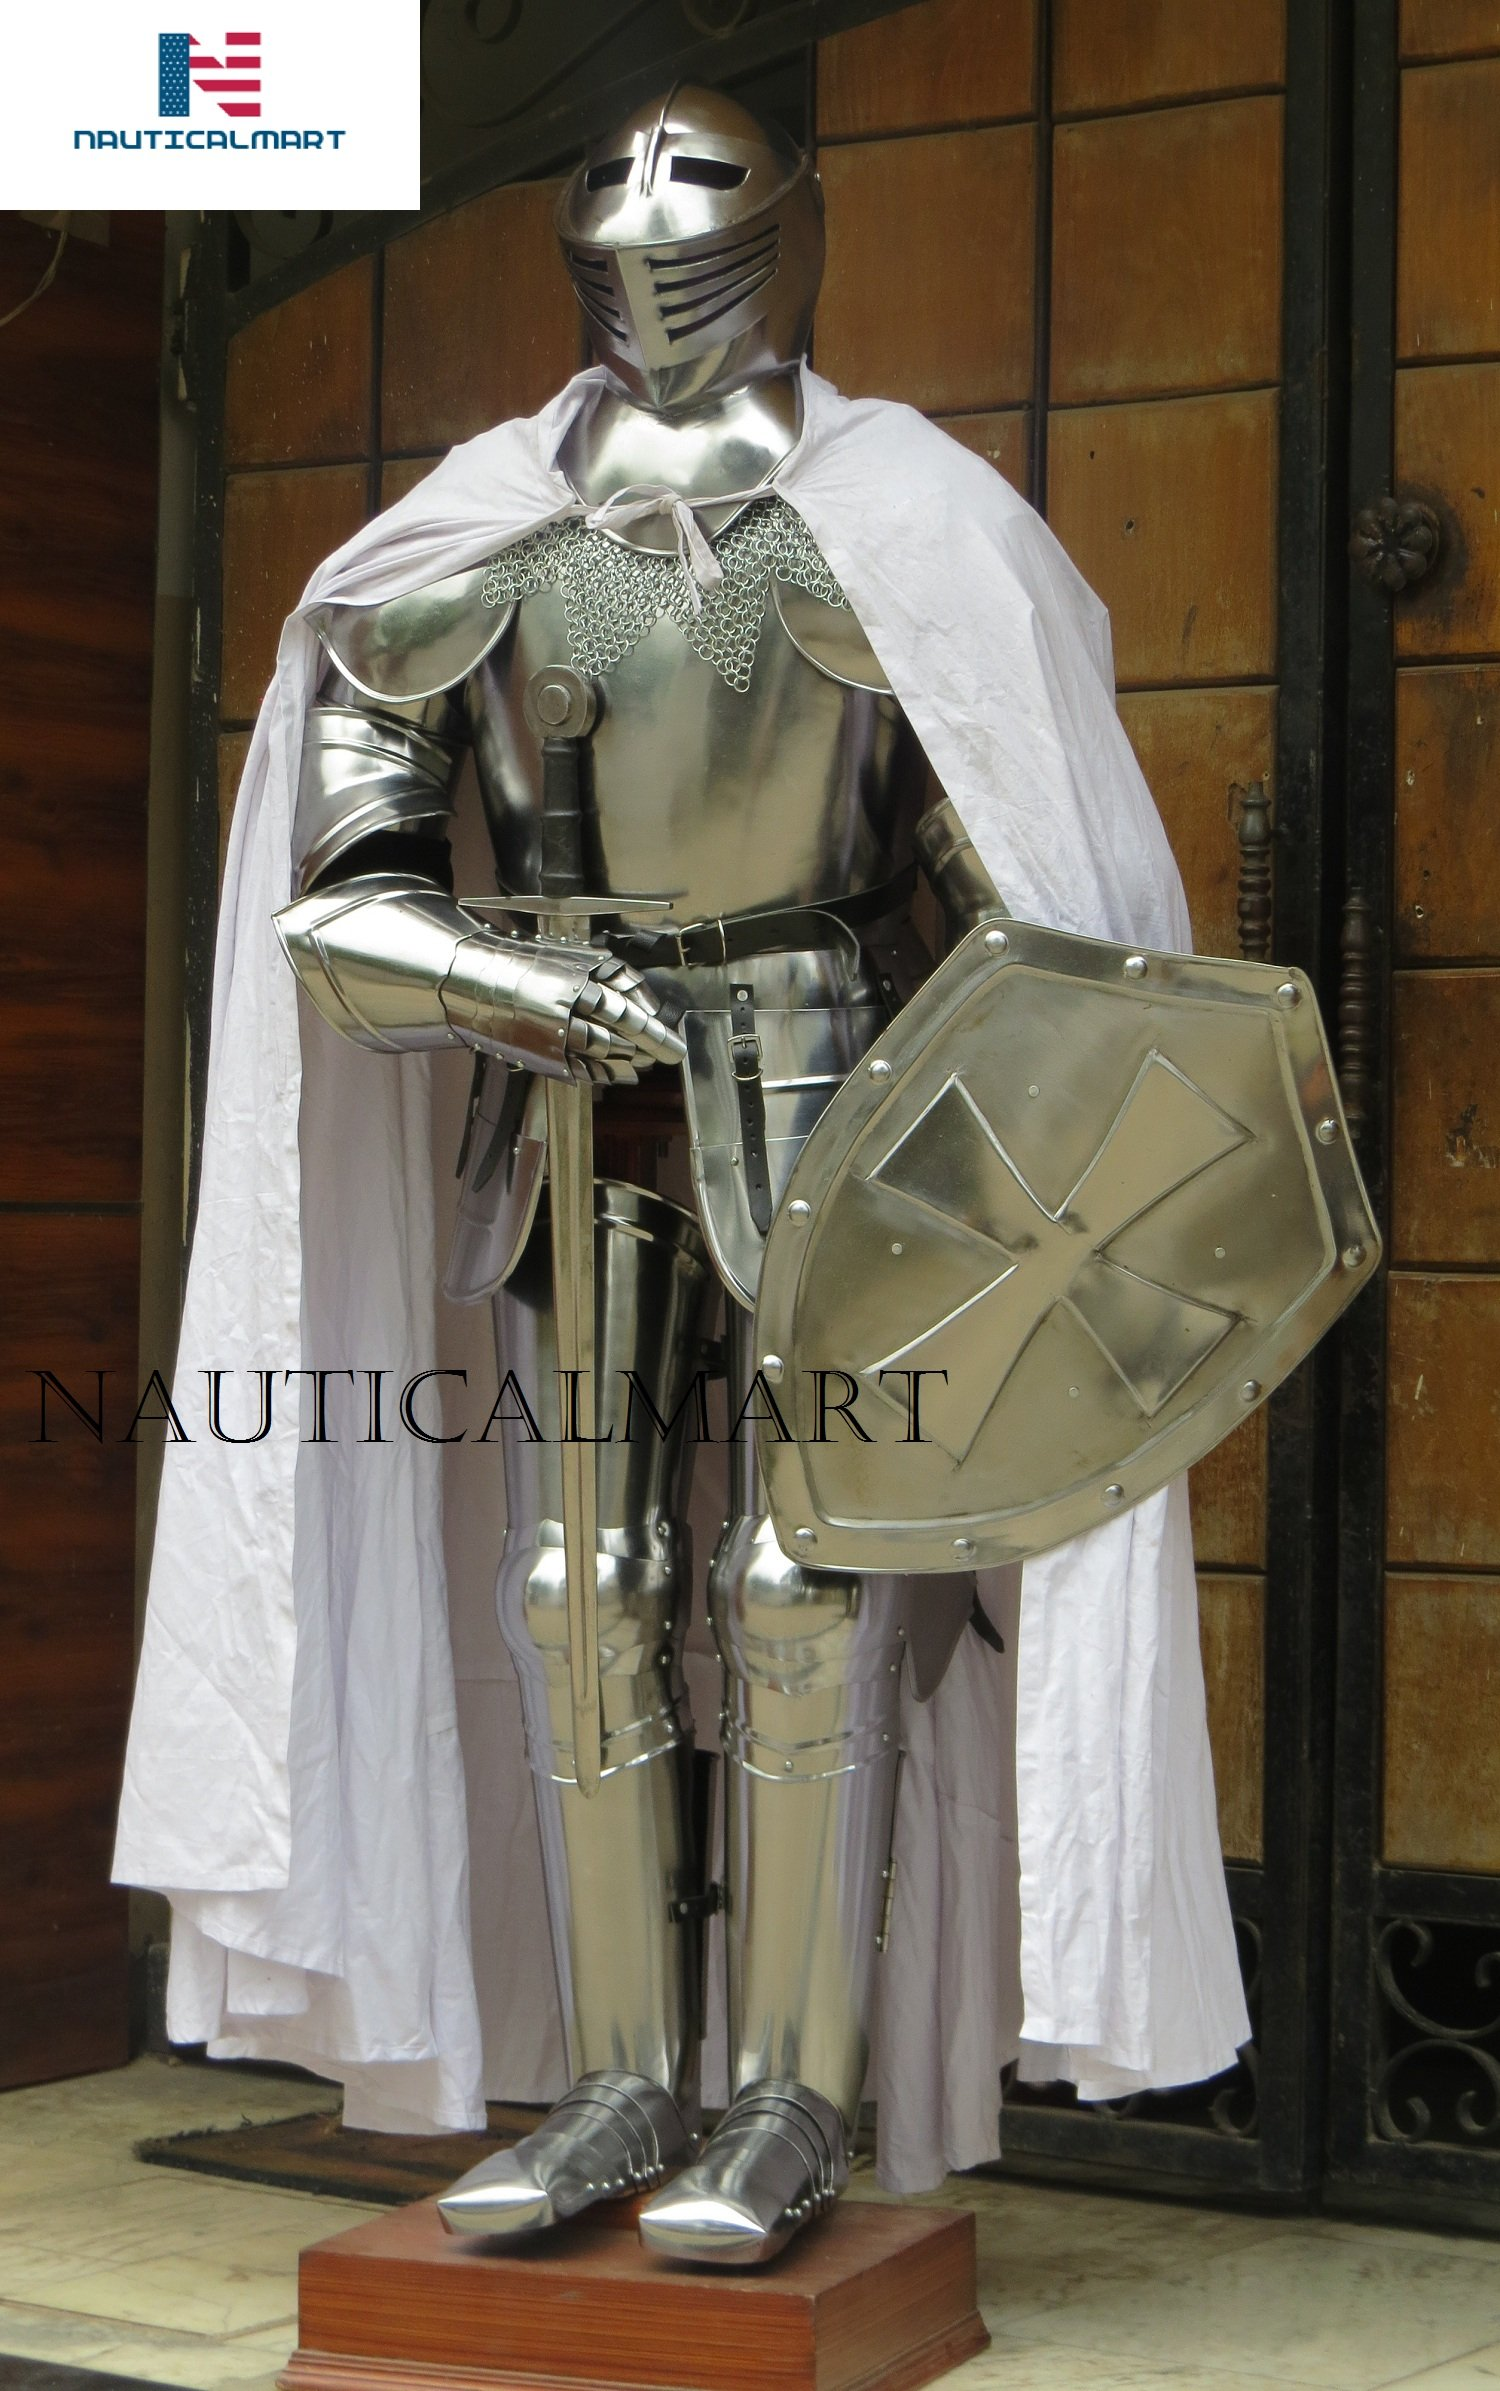 NAUTICALMART Knight Suit of Armor Medieval Reenactment Wearable Metallic One Size Halloween, Shield, Sword, Cape, Chainmail